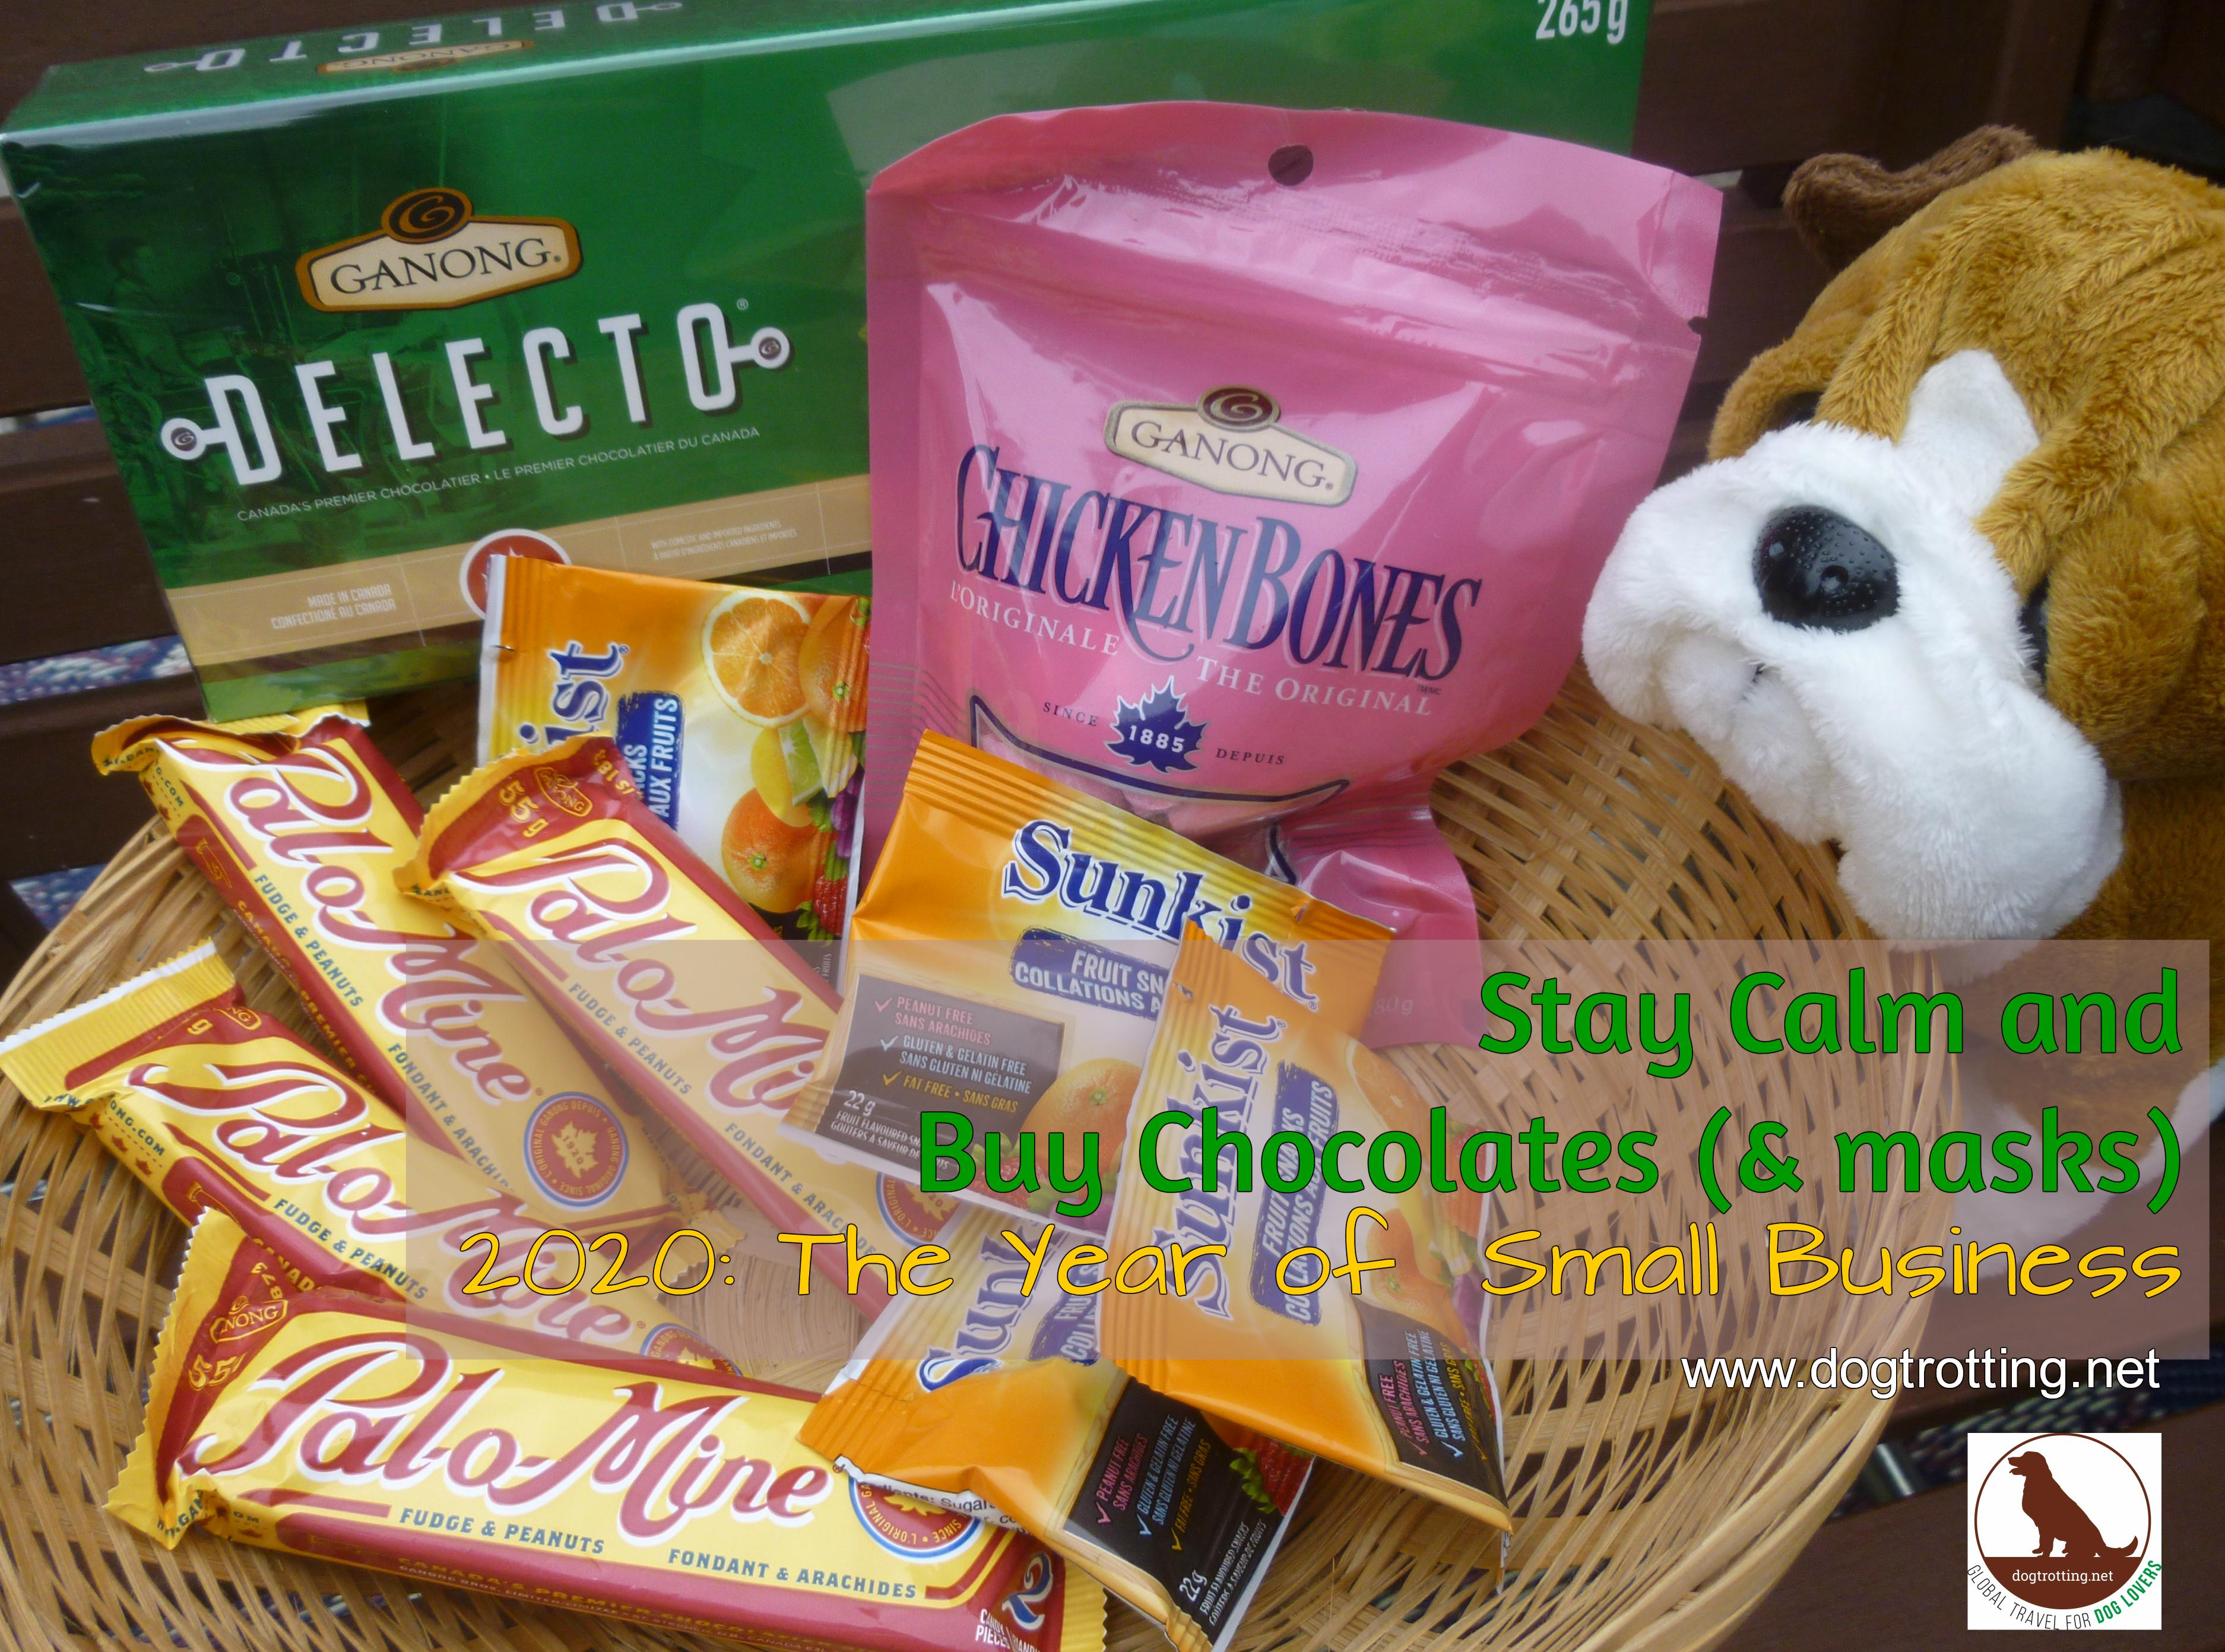 basket of Ganong chocolates